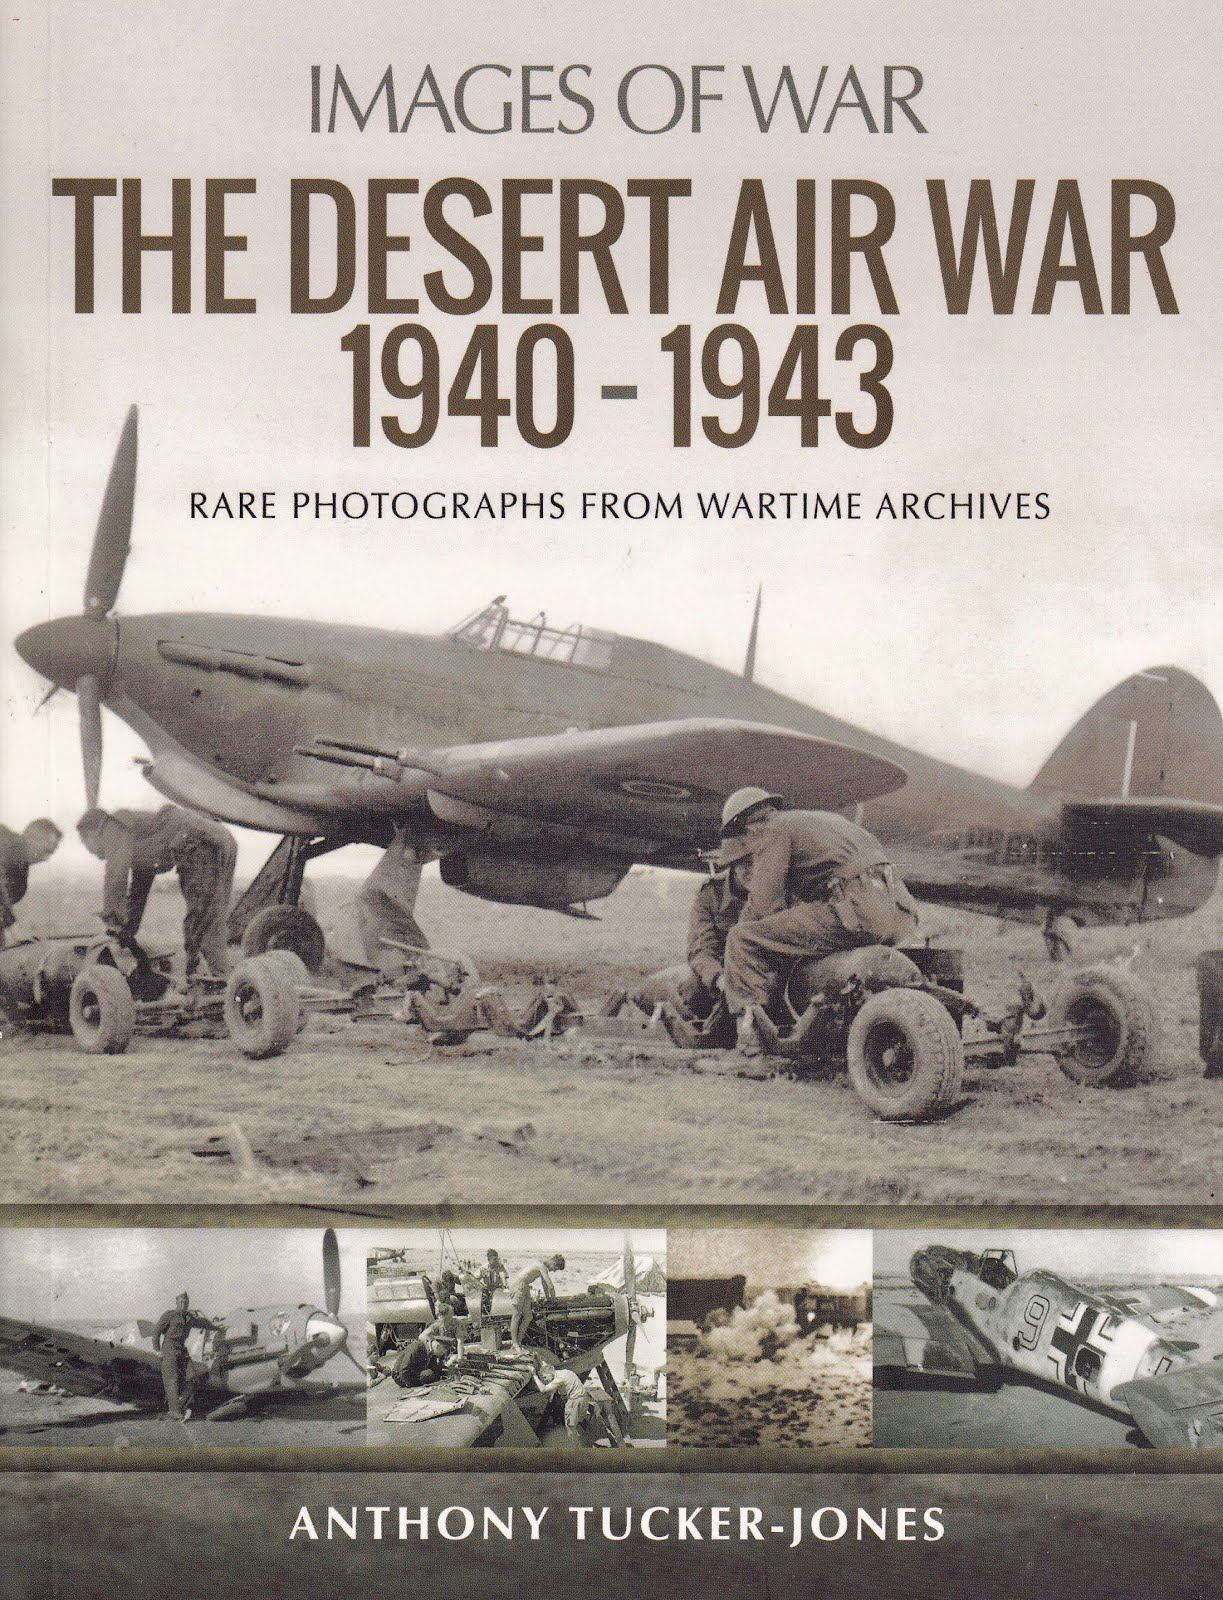 IOW: The Desert Air War